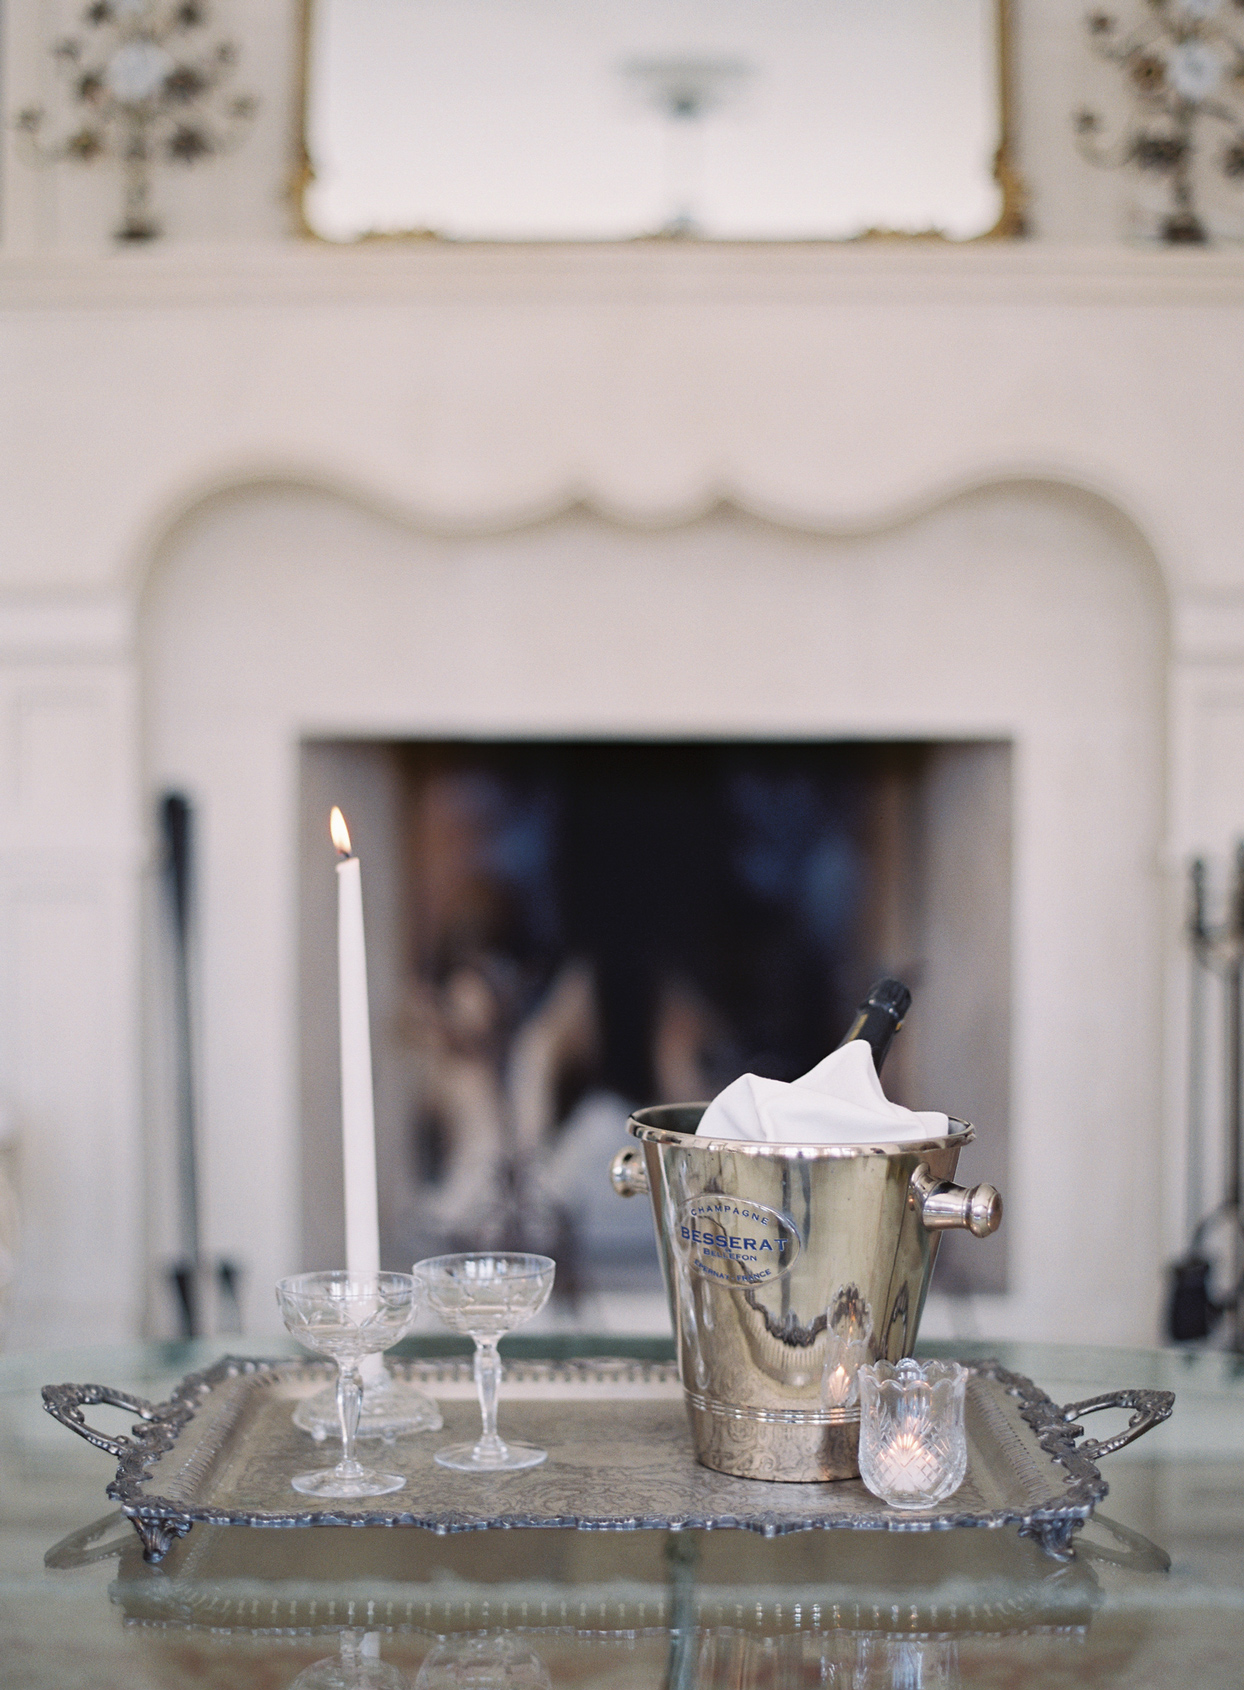 Champagne bucket on tray with glassware